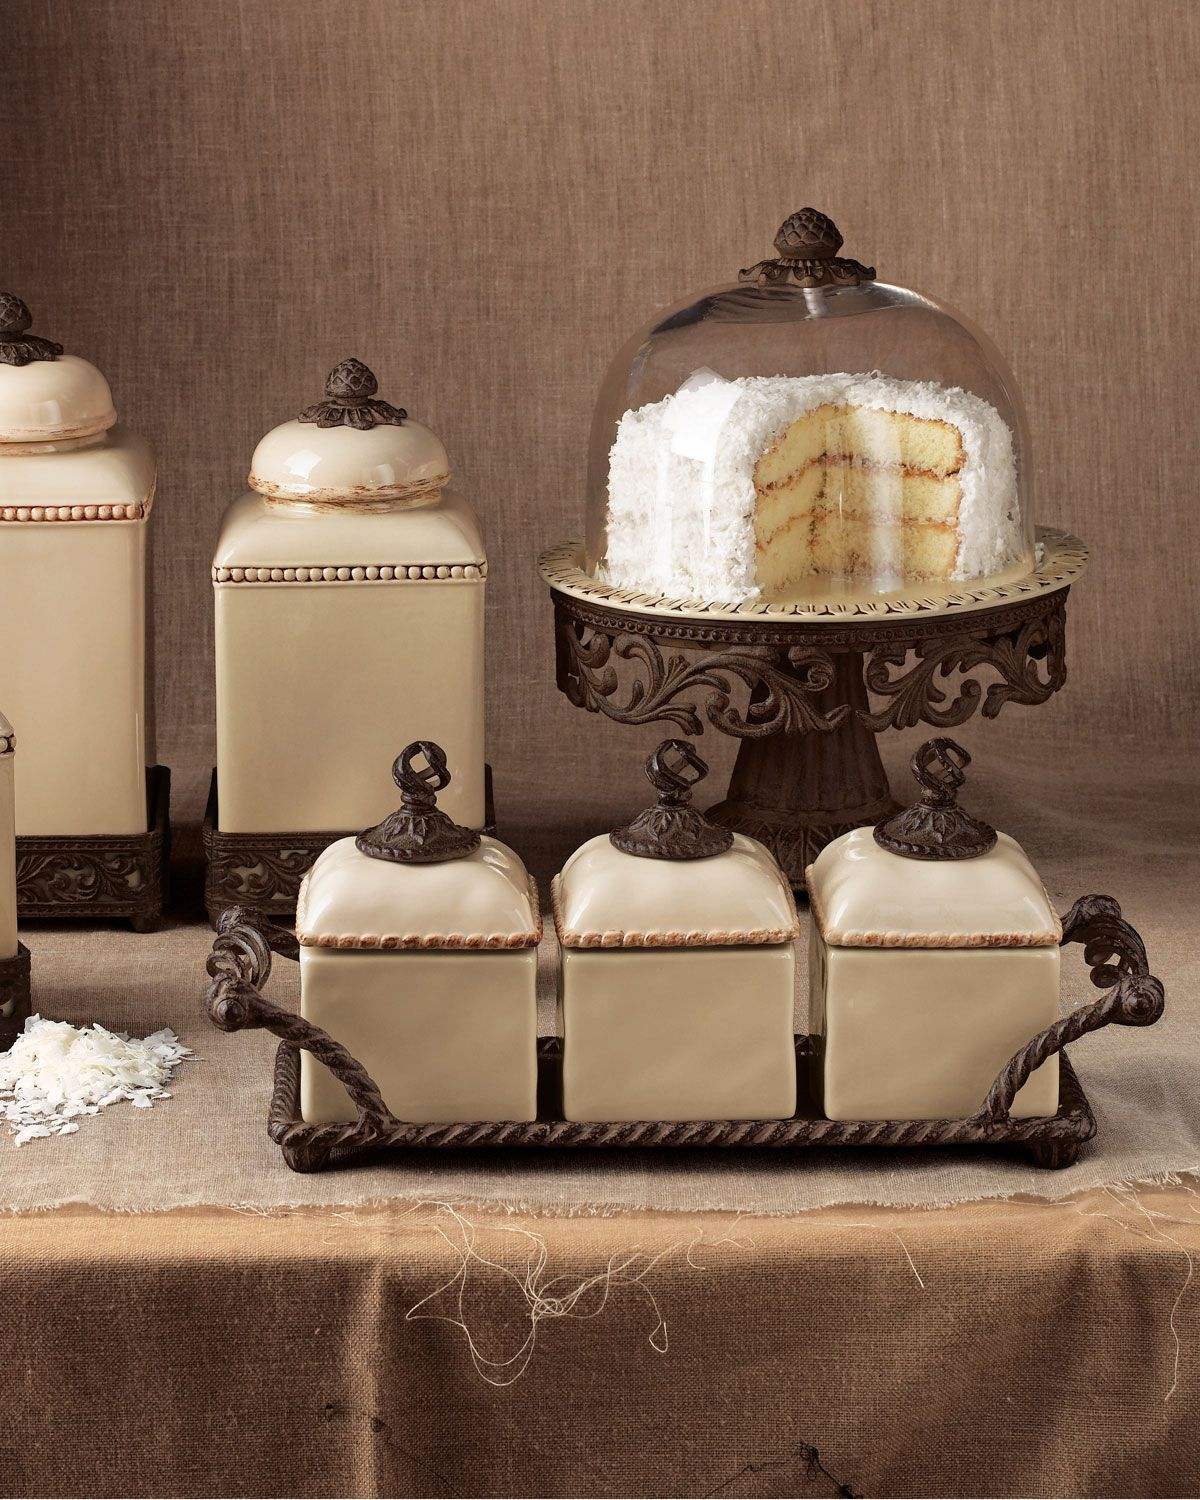 Gg collection canisters cake dome neiman marcus cake